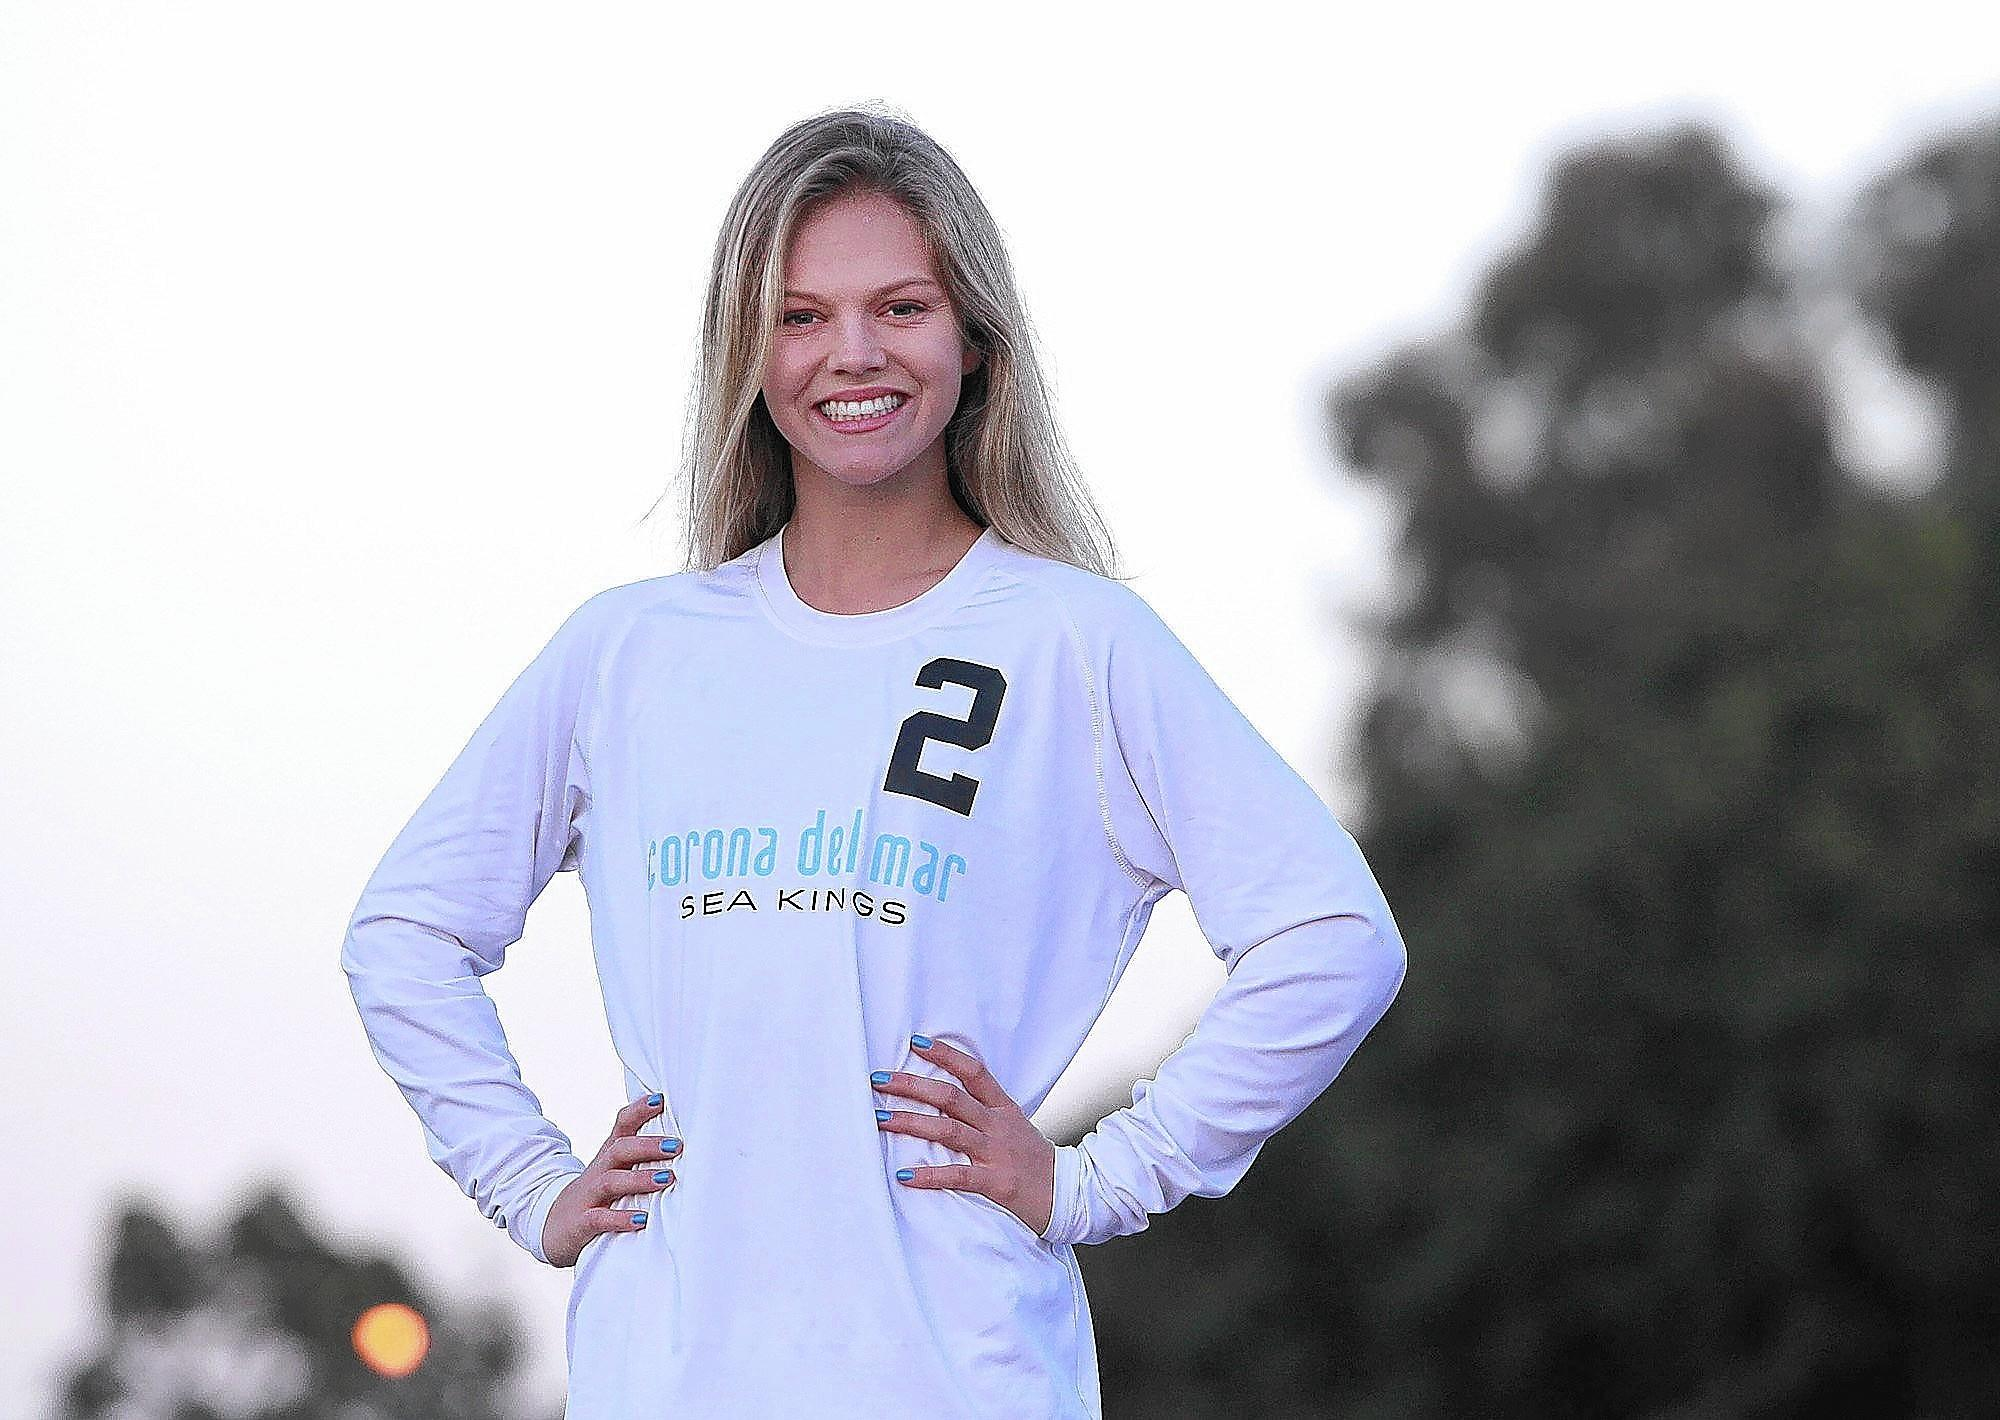 Corona del Mar High's Miranda Stiver is the Daily Pilot High School Athlete of the Week.